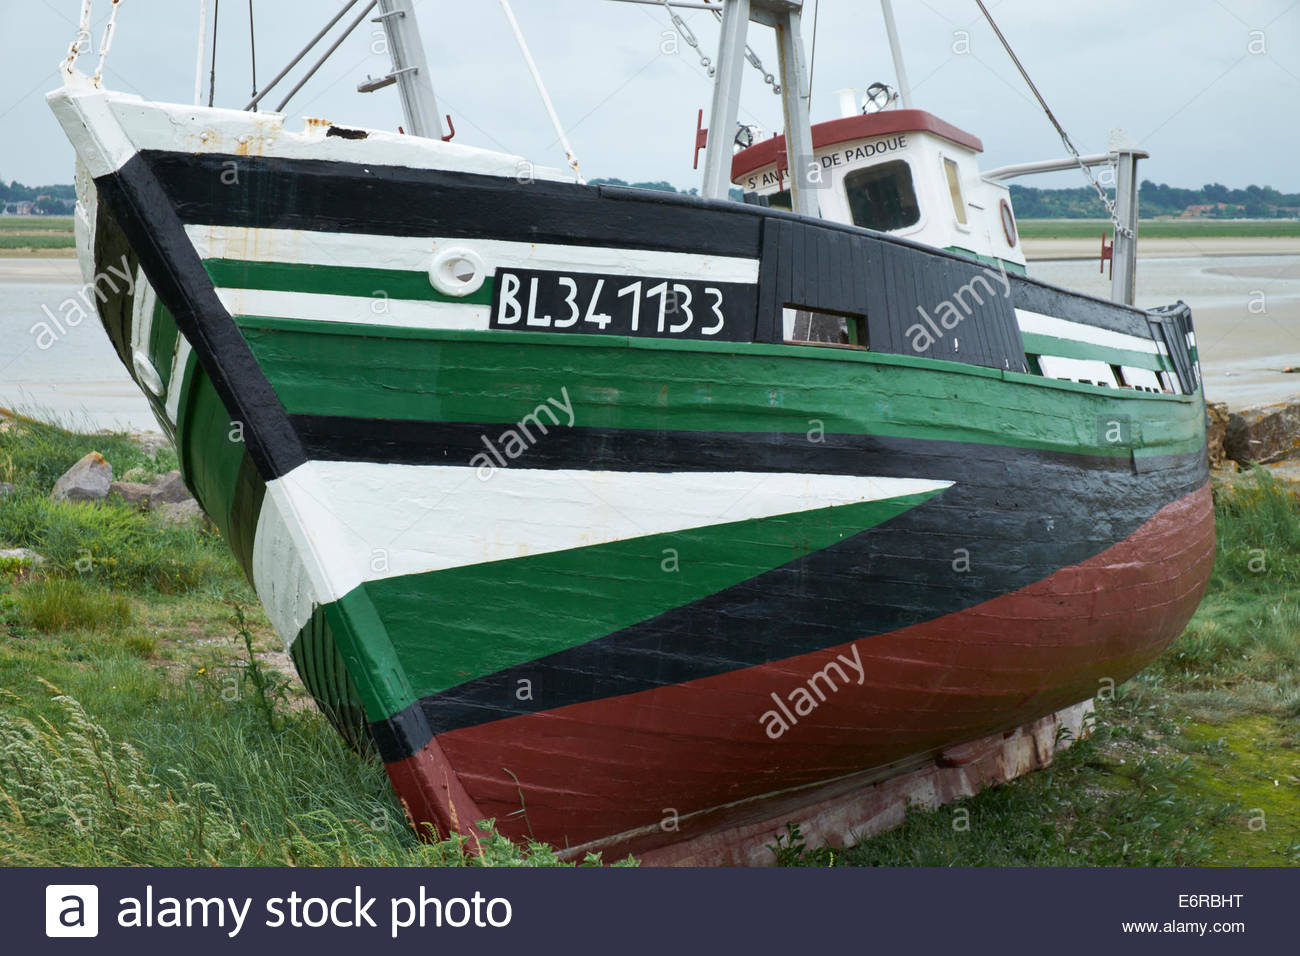 St Antoine de Padoue BL341133 Local history safeguarded by the local association of the sea Le Crotoy, Baie de Seine - Stock Image